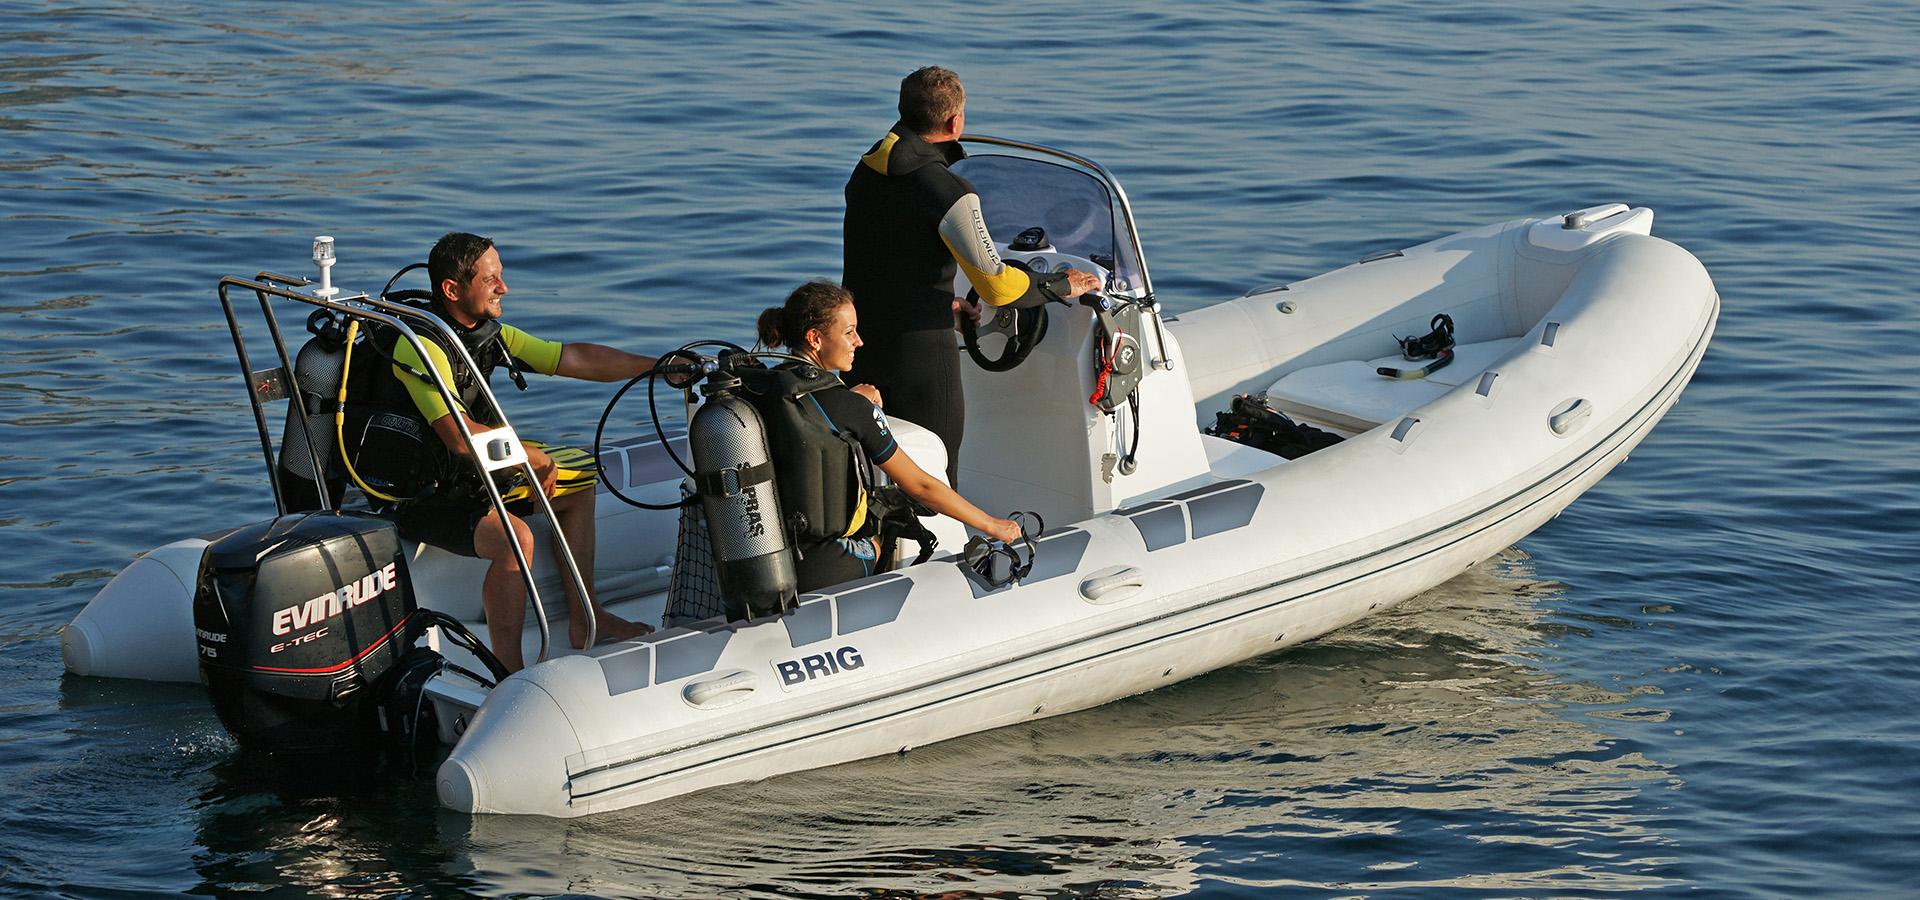 Lifestyle Scuba diving Crimea Brig Evinrude RIB Rigid inflatable